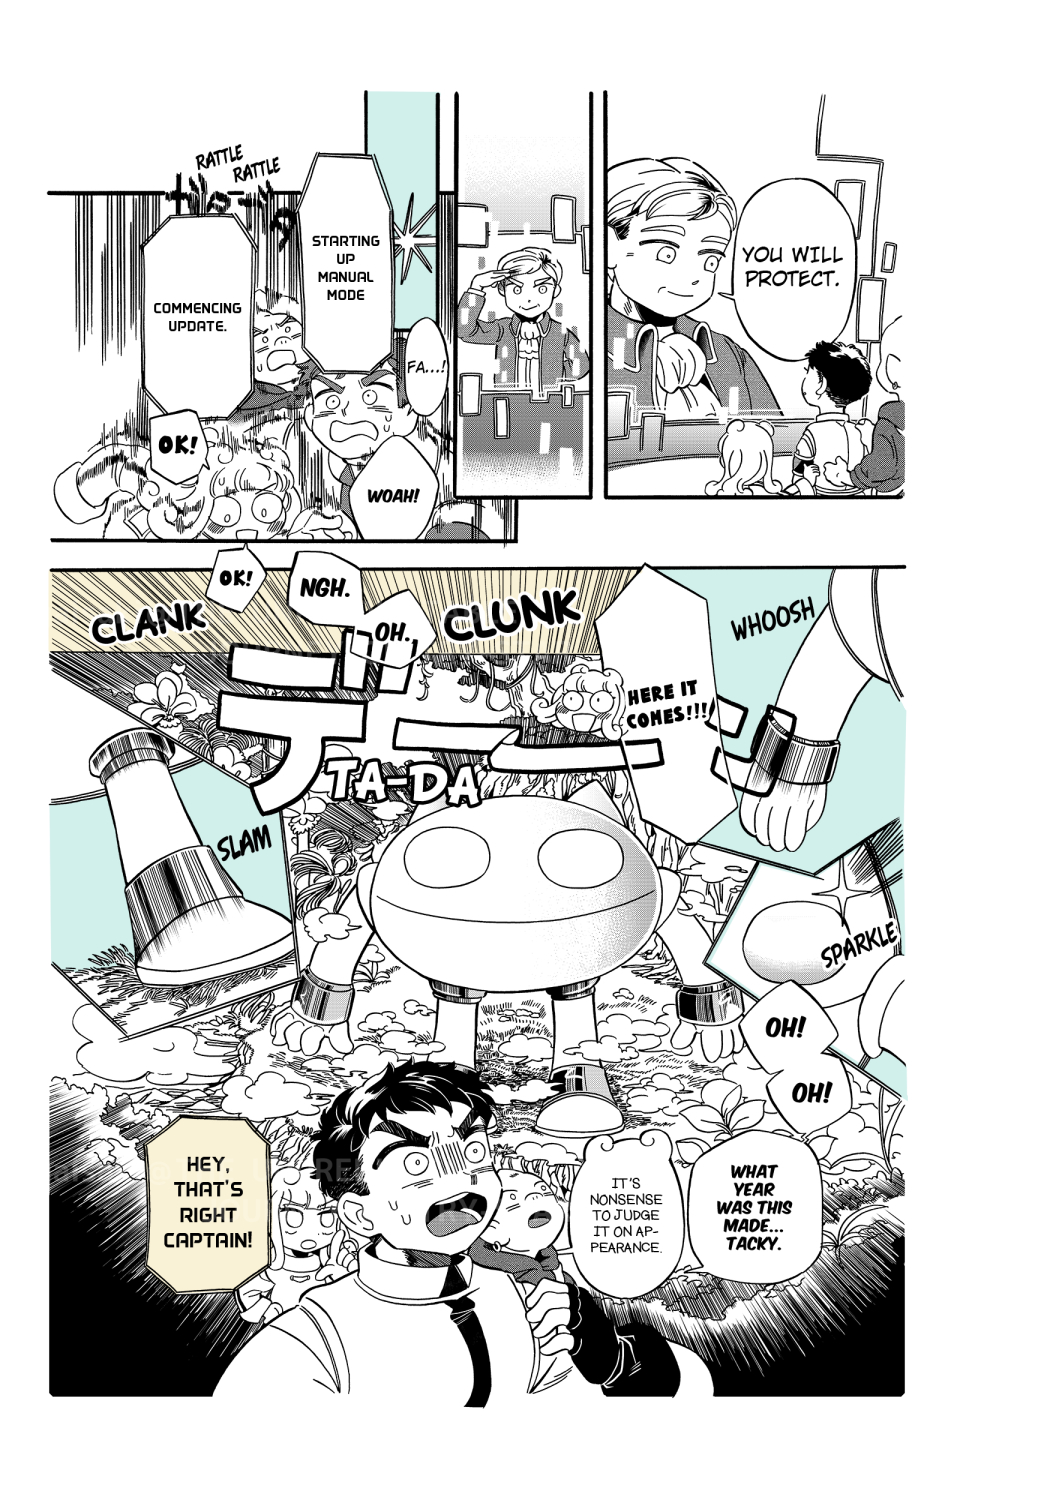 COMIC THE UNPREDICTABLE JOURNEY OF TRY-STAR 41